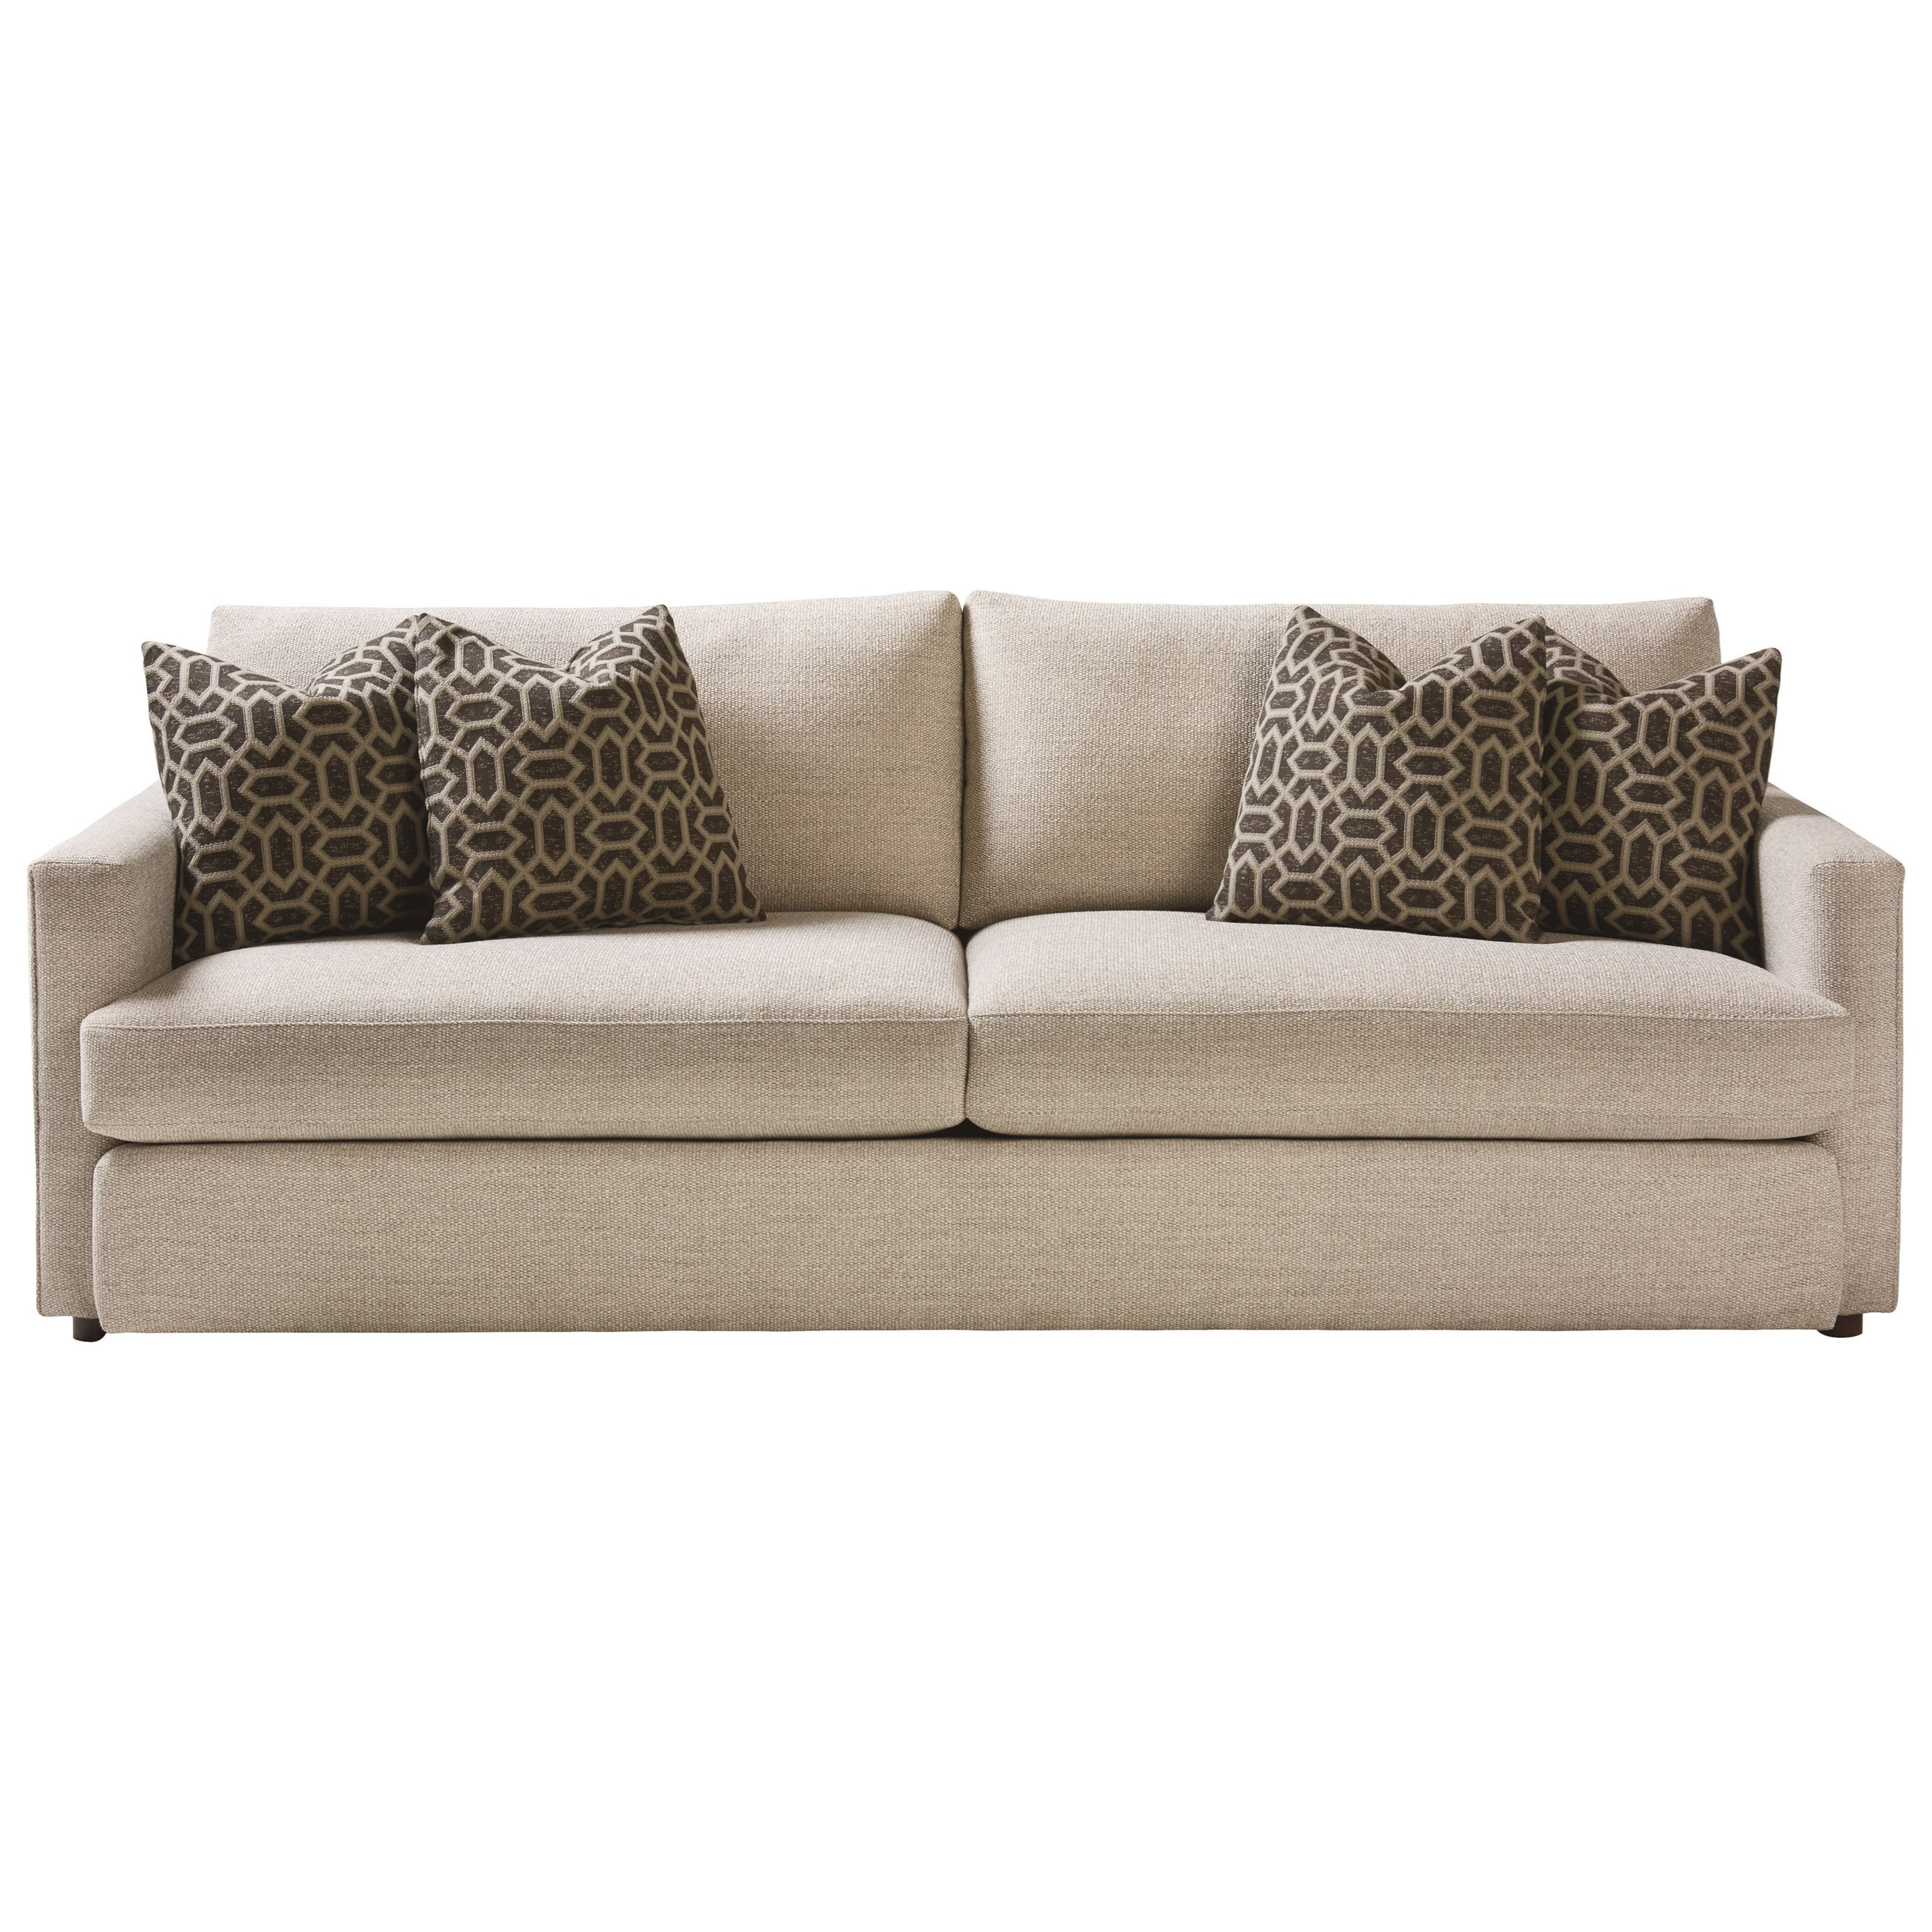 Allure Sofa by Bassett at Fisher Home Furnishings